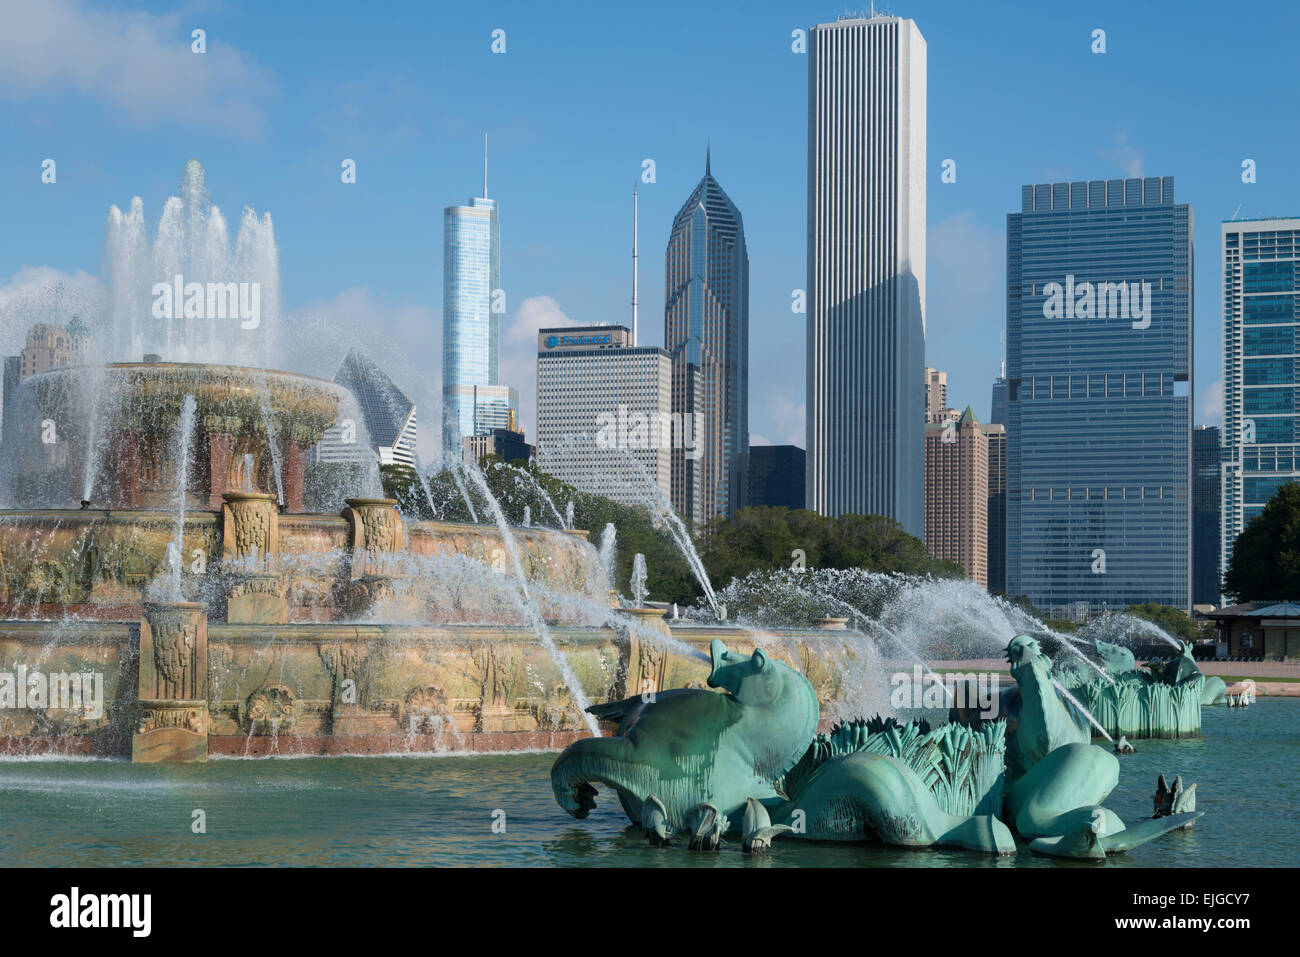 Buckingham fountain. Downtown Chicago. Illinois. USA - Stock Image